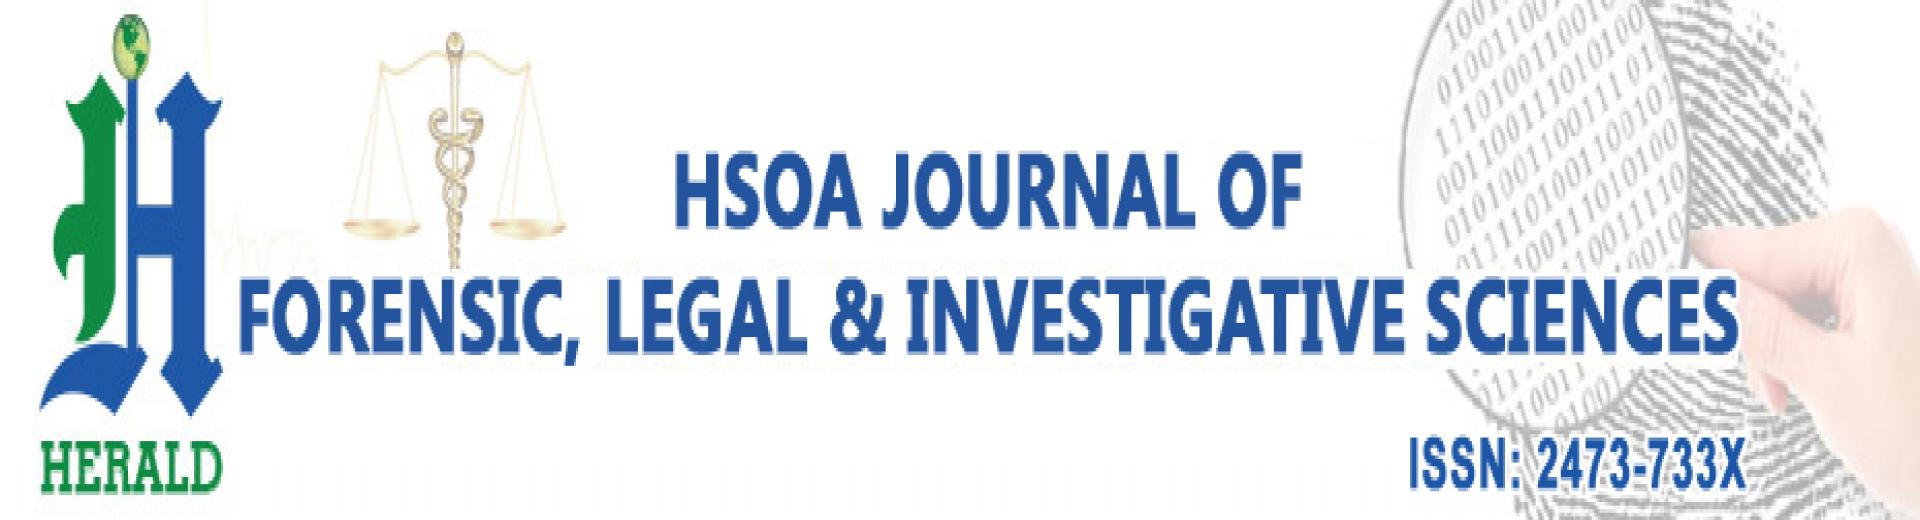 Articles In Press Journal Of Forensic Legal Investigative Sciences